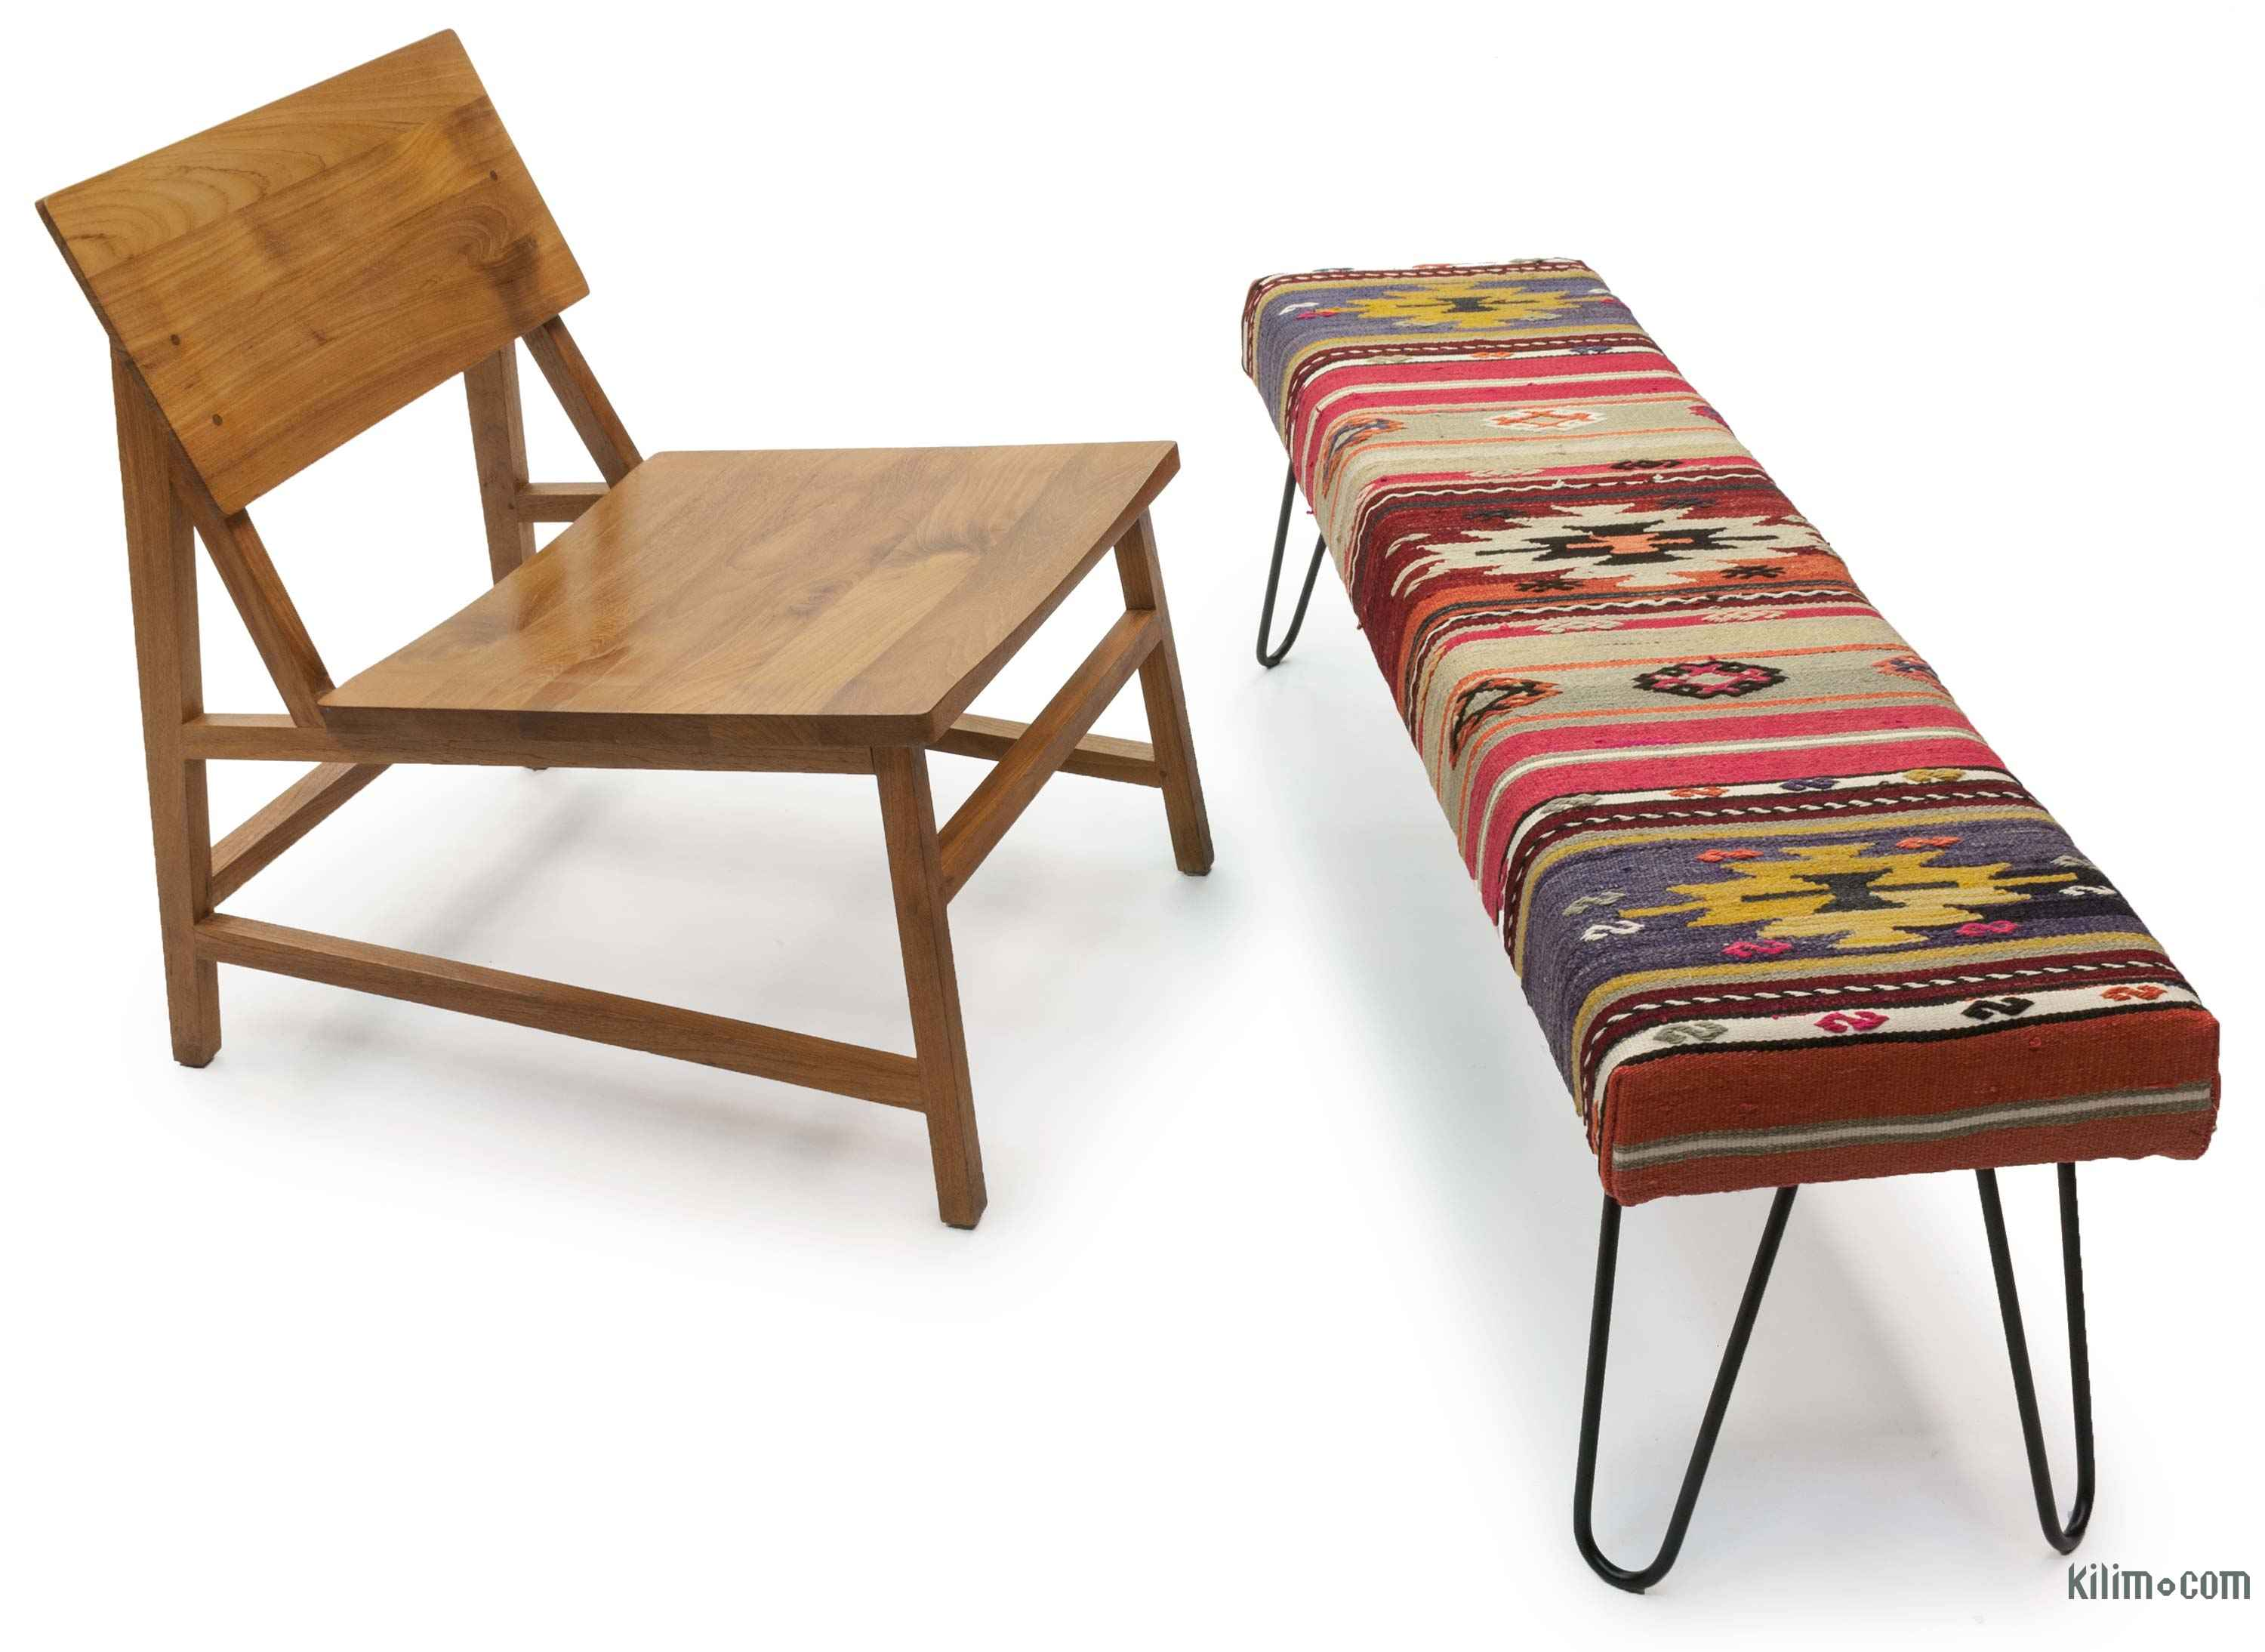 Chic Antique 19th Century Kilim Covered Ottoman Bench For ... |Kilim Ottoman Bench